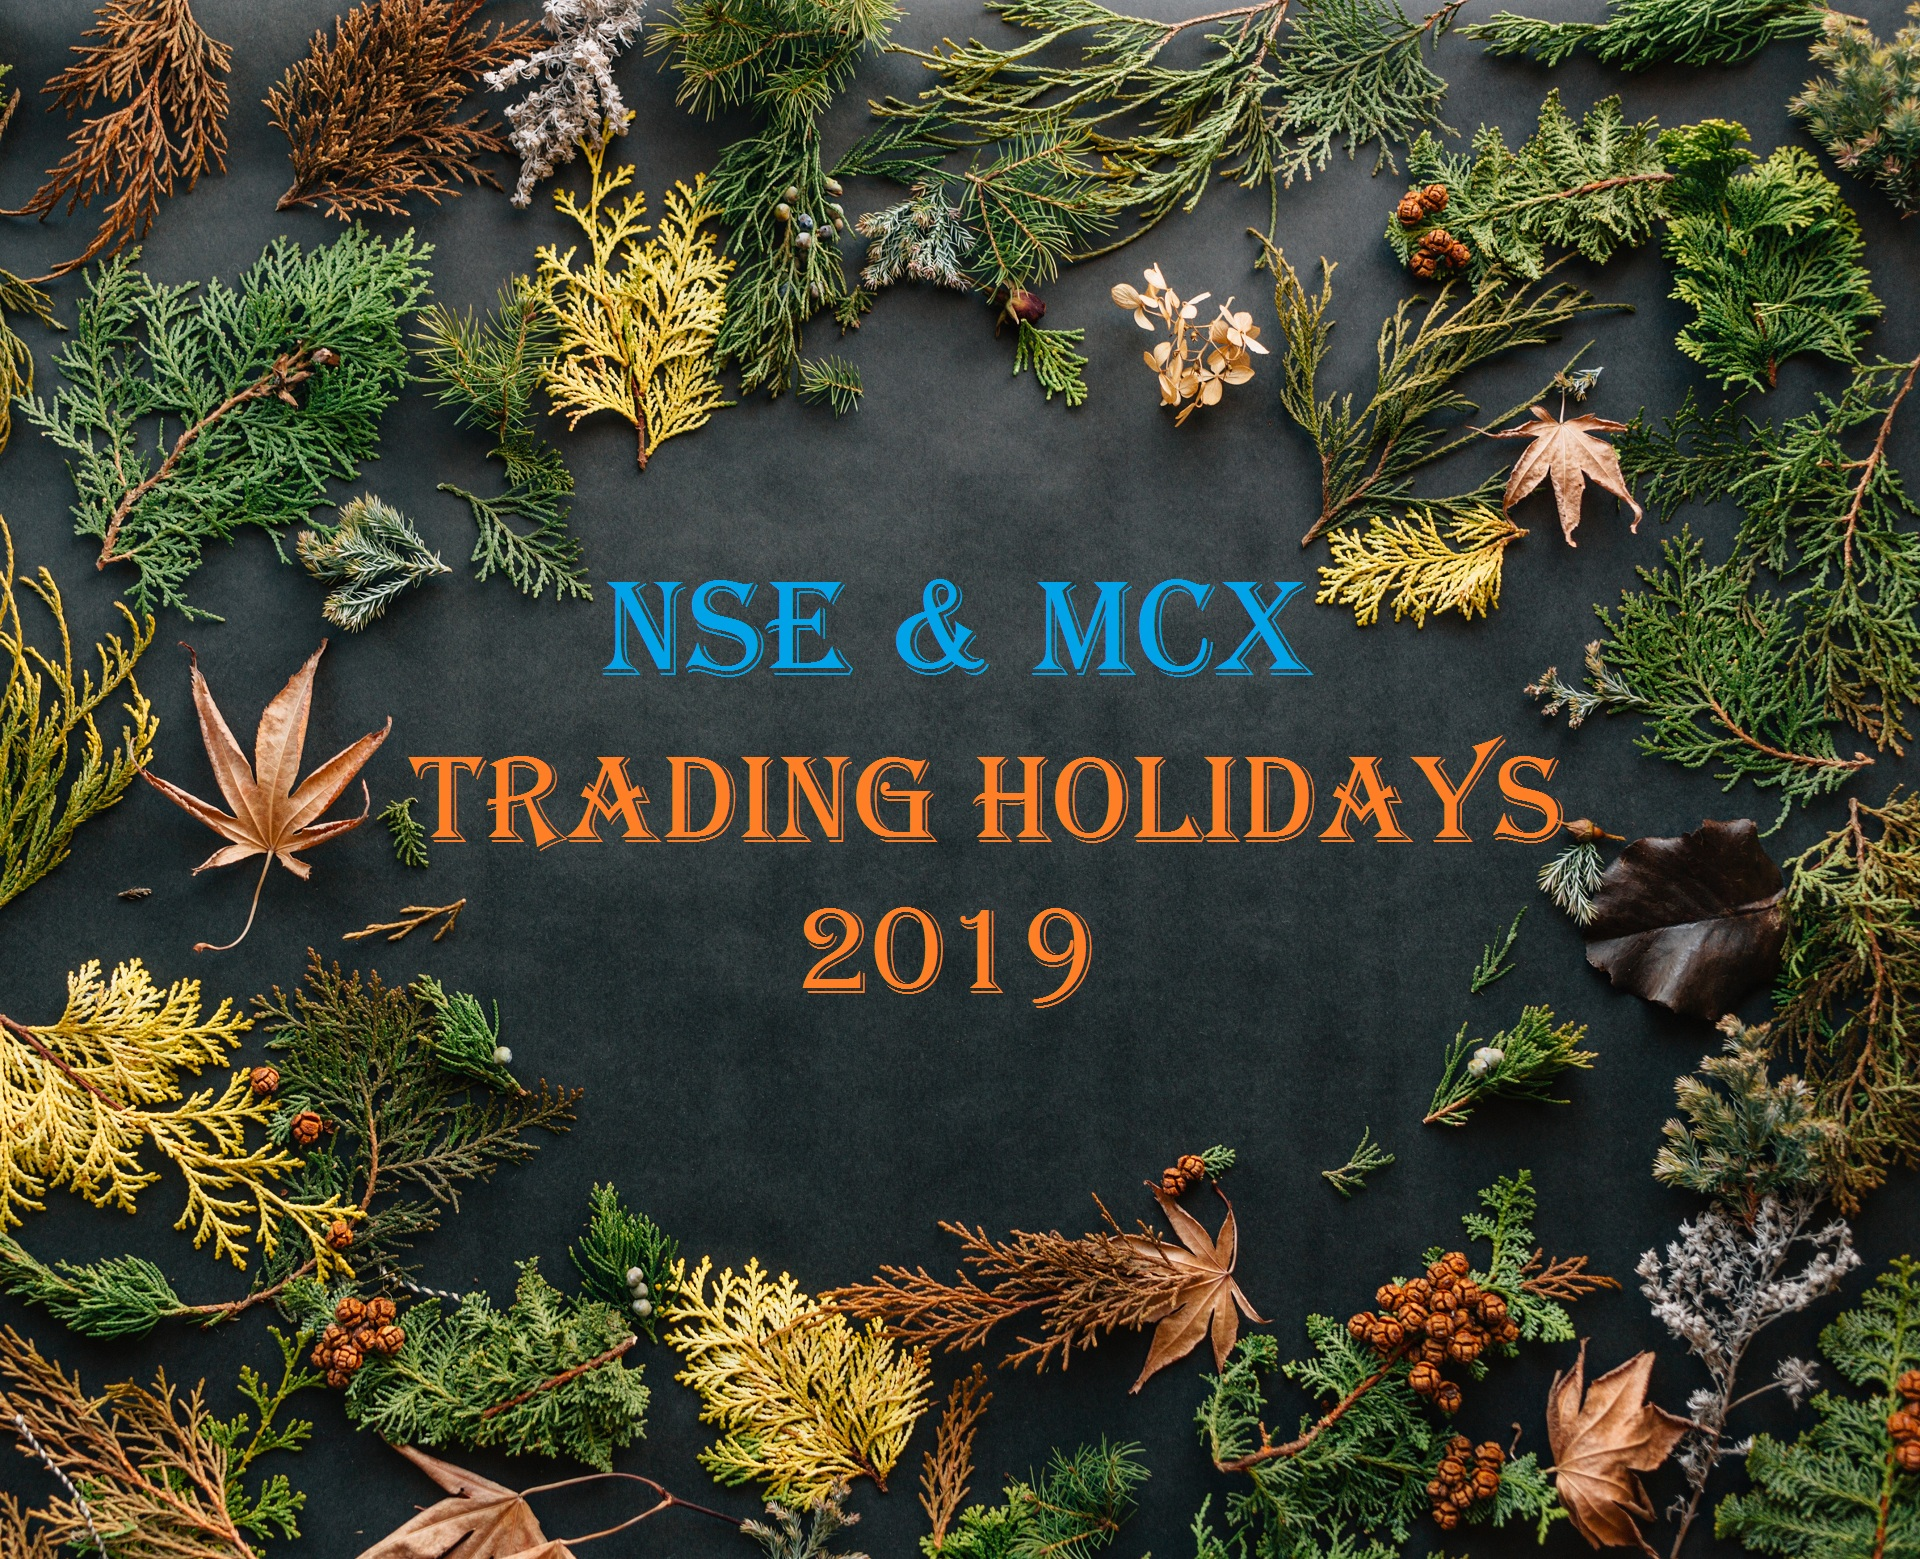 Trading-Holidays-for-the-year-2019-NSE-and-MCX